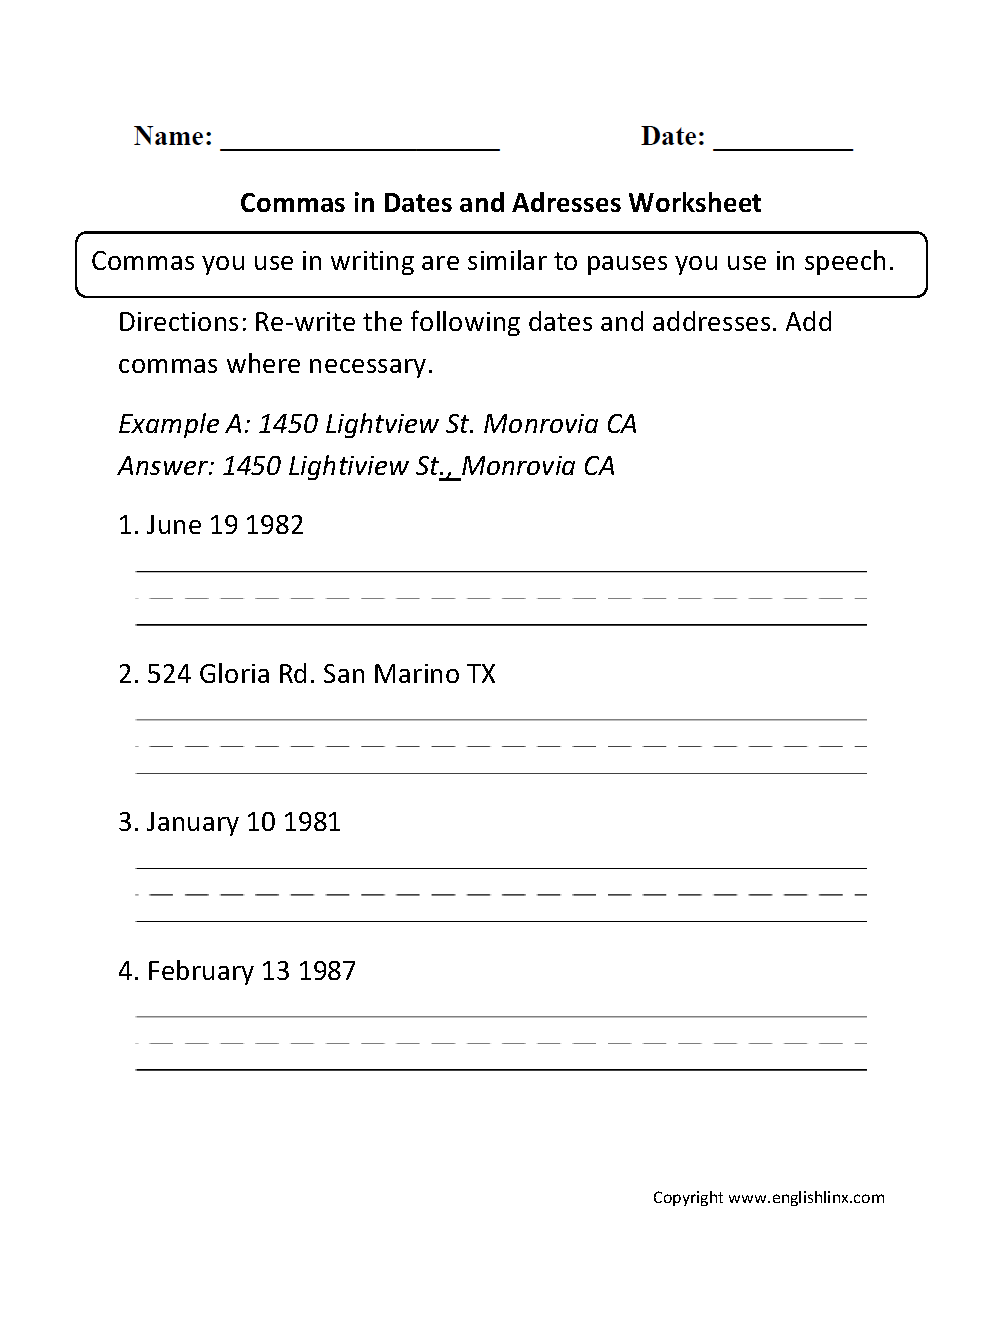 worksheet Comma Usage Worksheet englishlinx com commas worksheets in dates and addresses worksheet